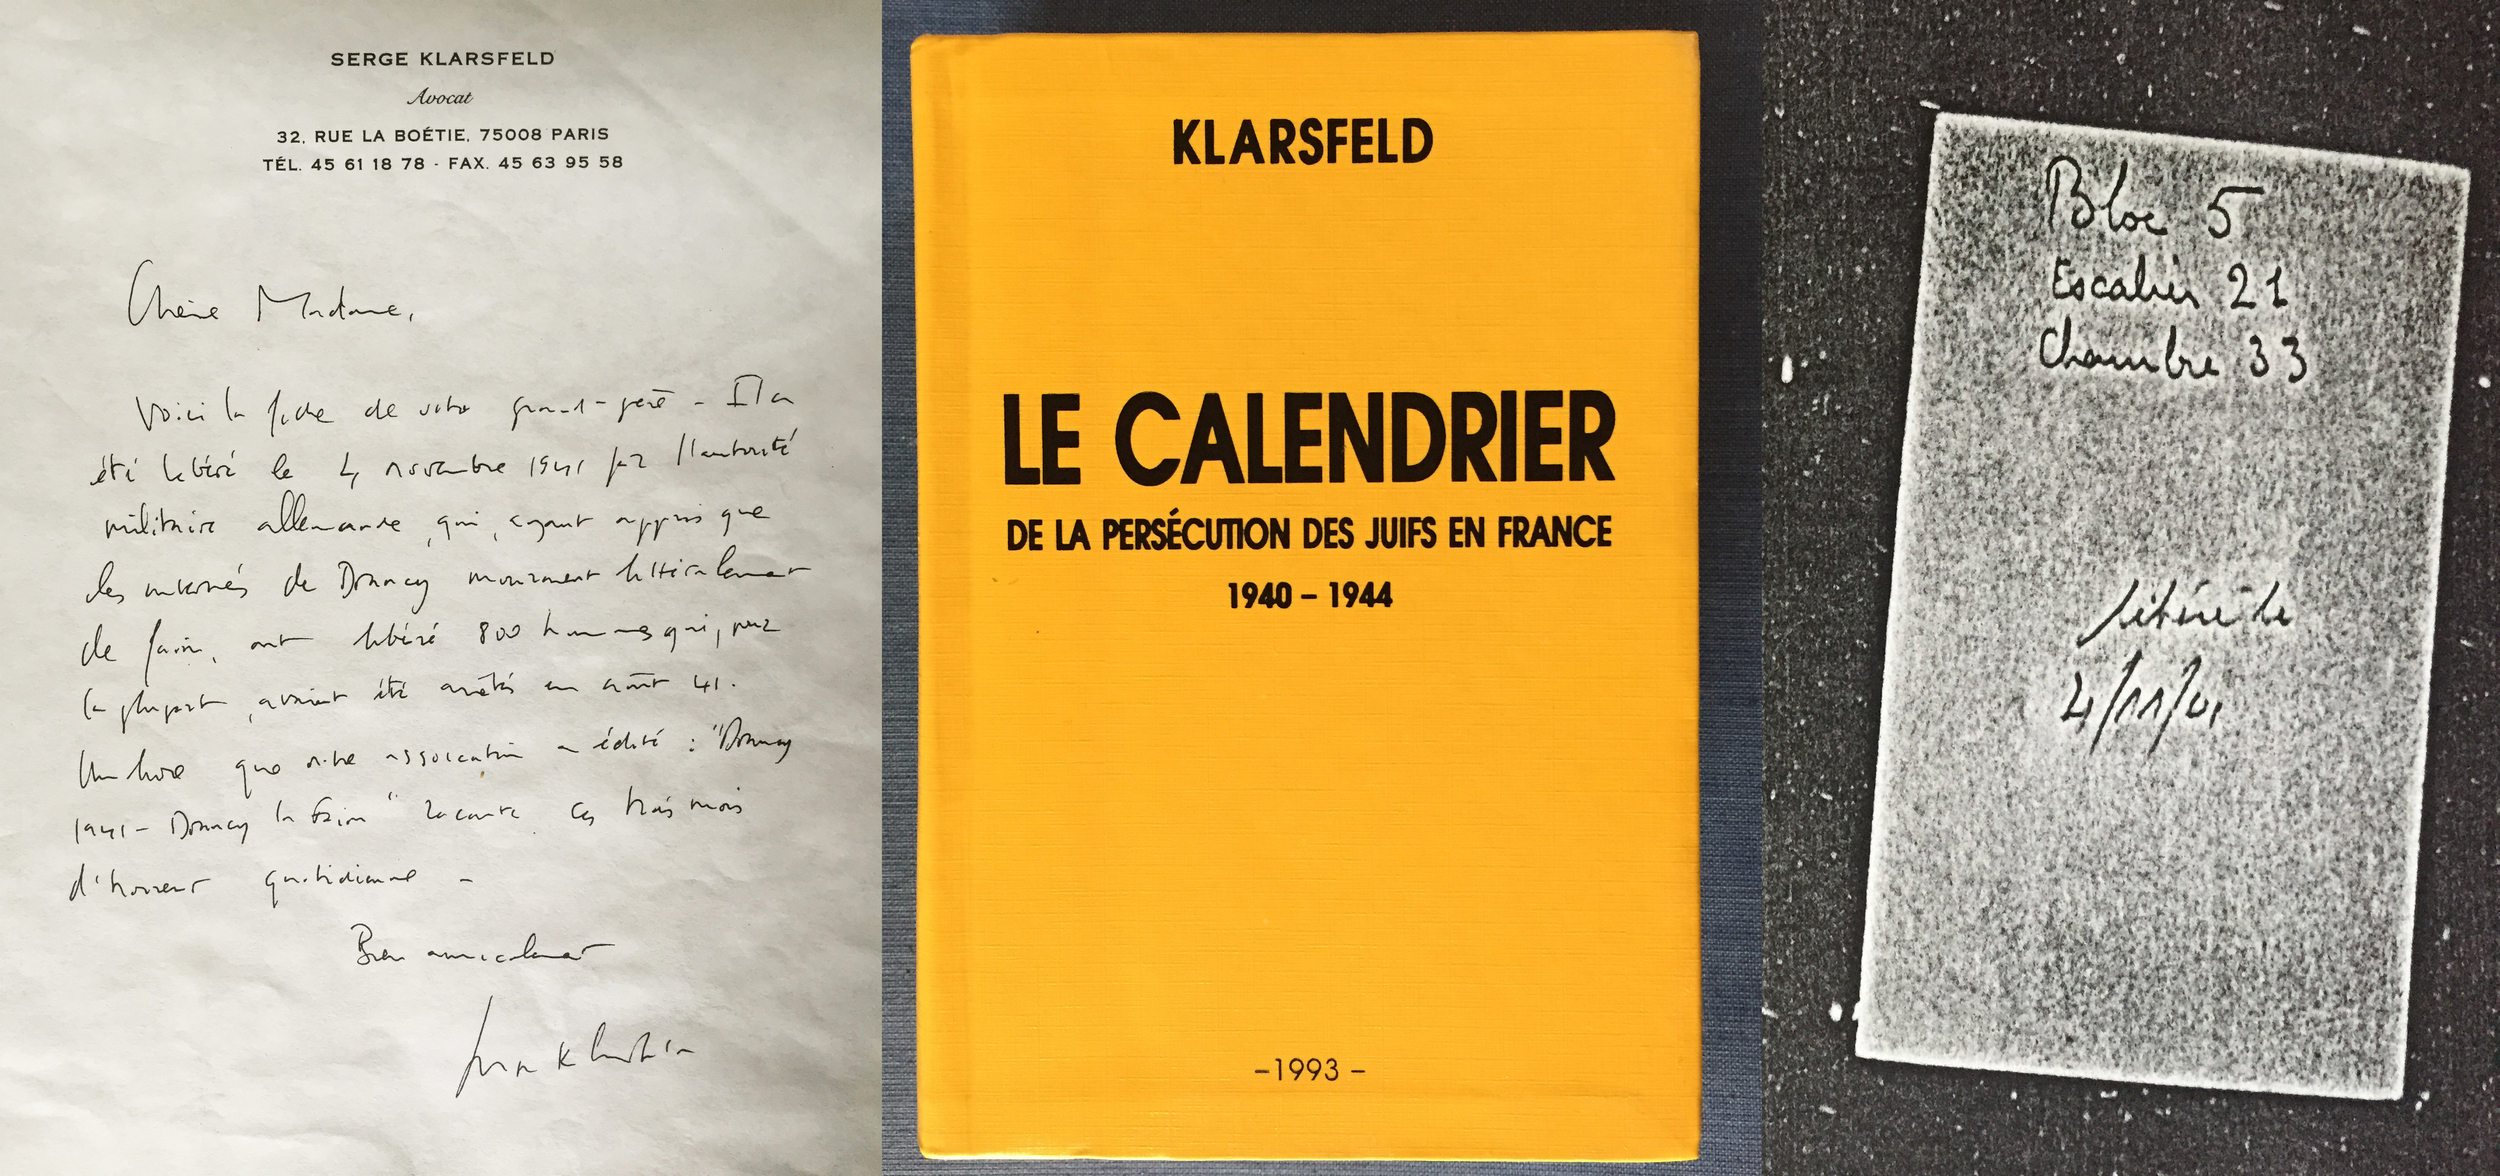 After a generation of uncertainty about George's, Janine's father, time in Drancy concentration camp, her daughter, Muriel Hasbun, inquired with Serge Klarsfeld. Mr. Klarsfeld is an activist and a documentarian of Nazis and Vichy France. His daily accounts have helped with the prosecution of many war crimes. Mr. Klarsfeld looked into the matter of Janine's father and sent word of the exact dates and room where he stayed in Drancy. The concentration camp has since been turned into apartments. (Ephemera:Muriel Hasbun archive.)